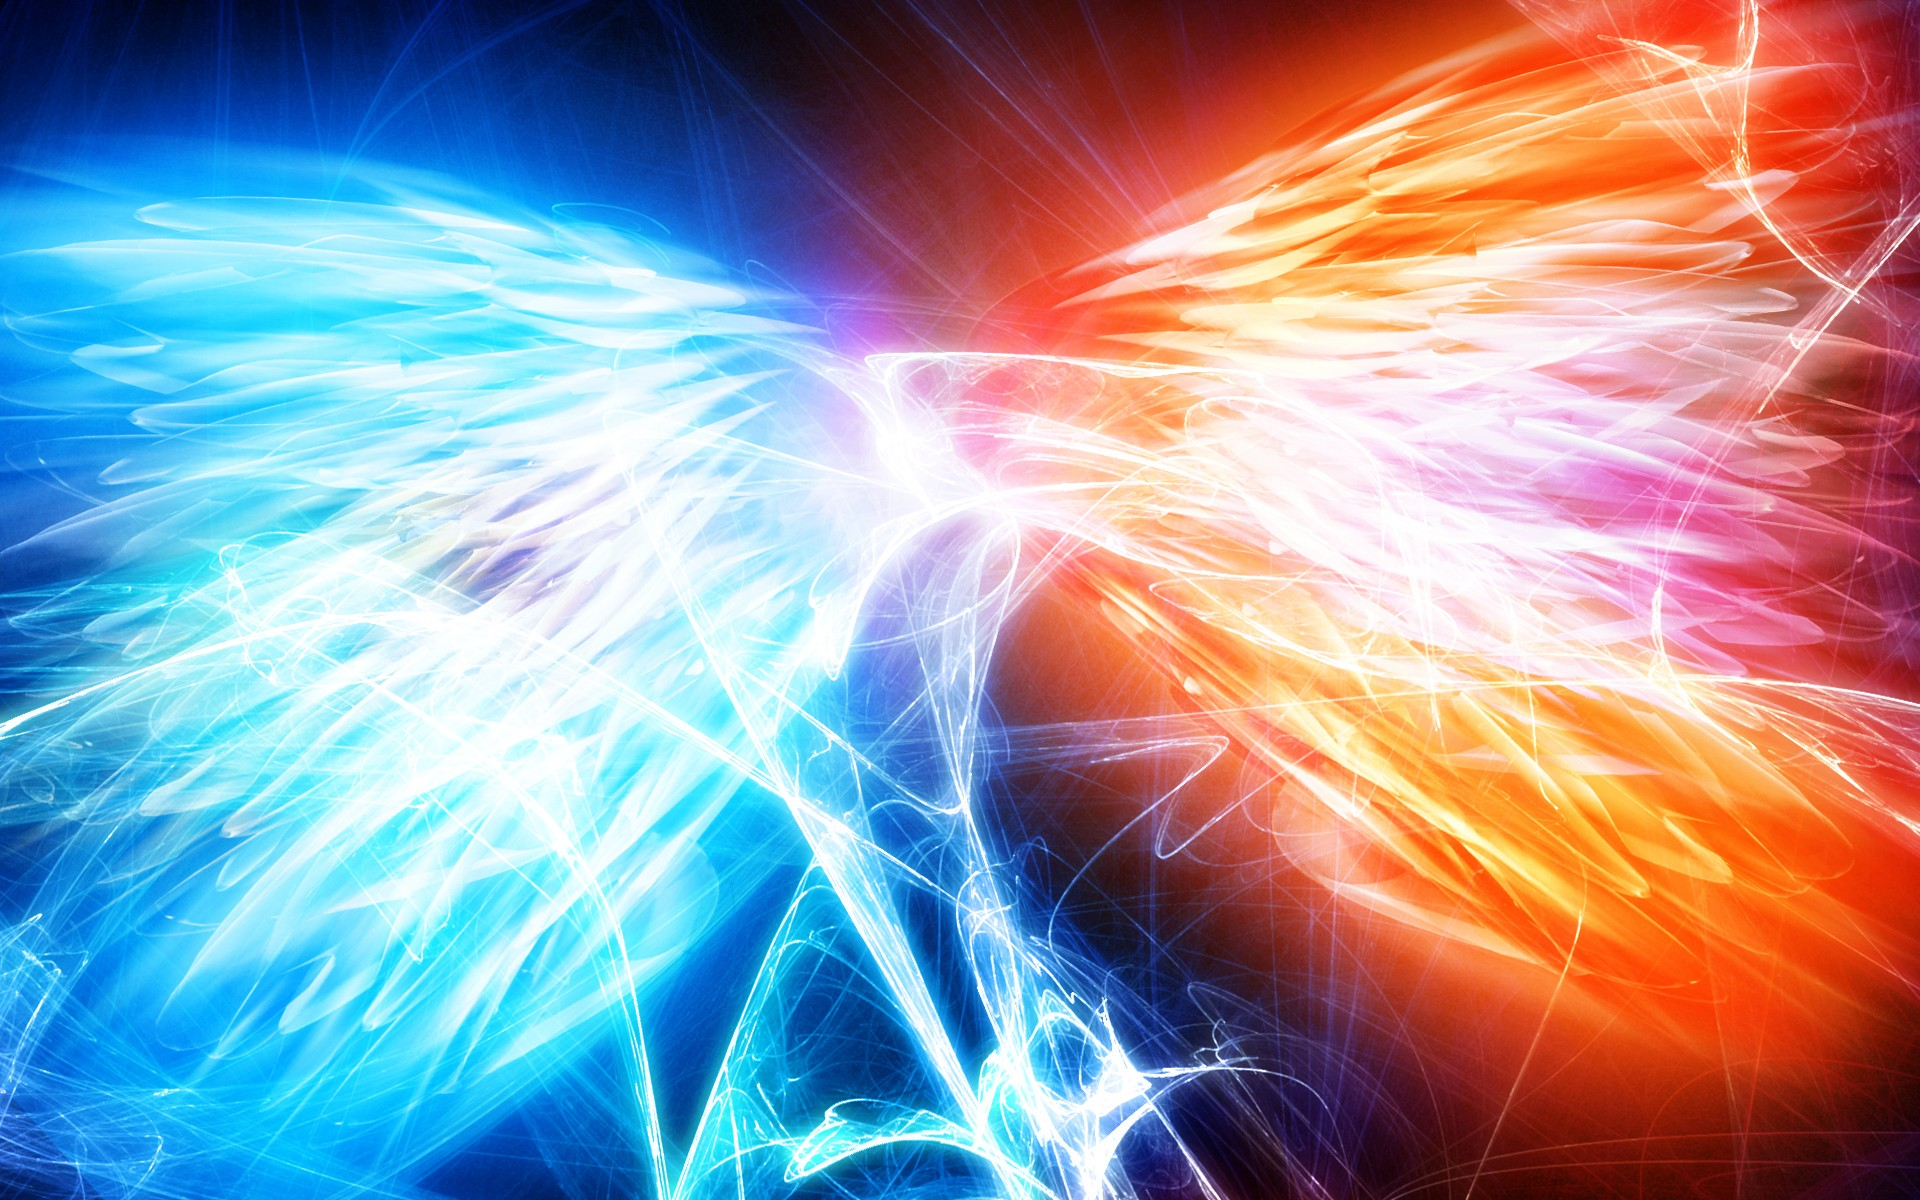 Epic background download free amazing backgrounds for for Epic free download